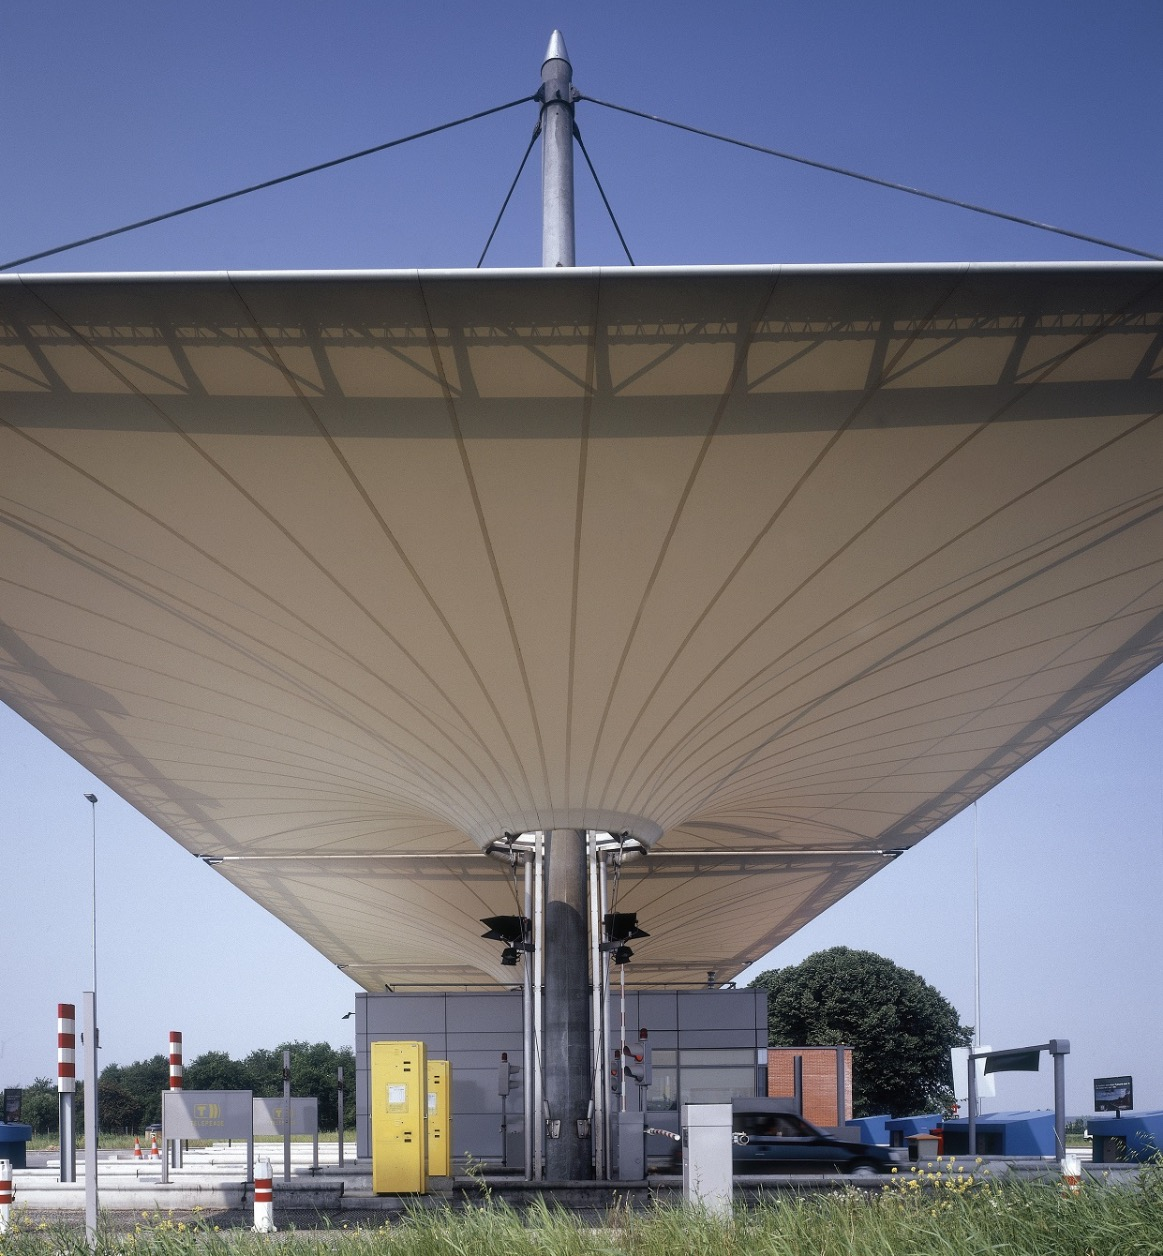 INVERTED CONE TENSILE TOLL GATE